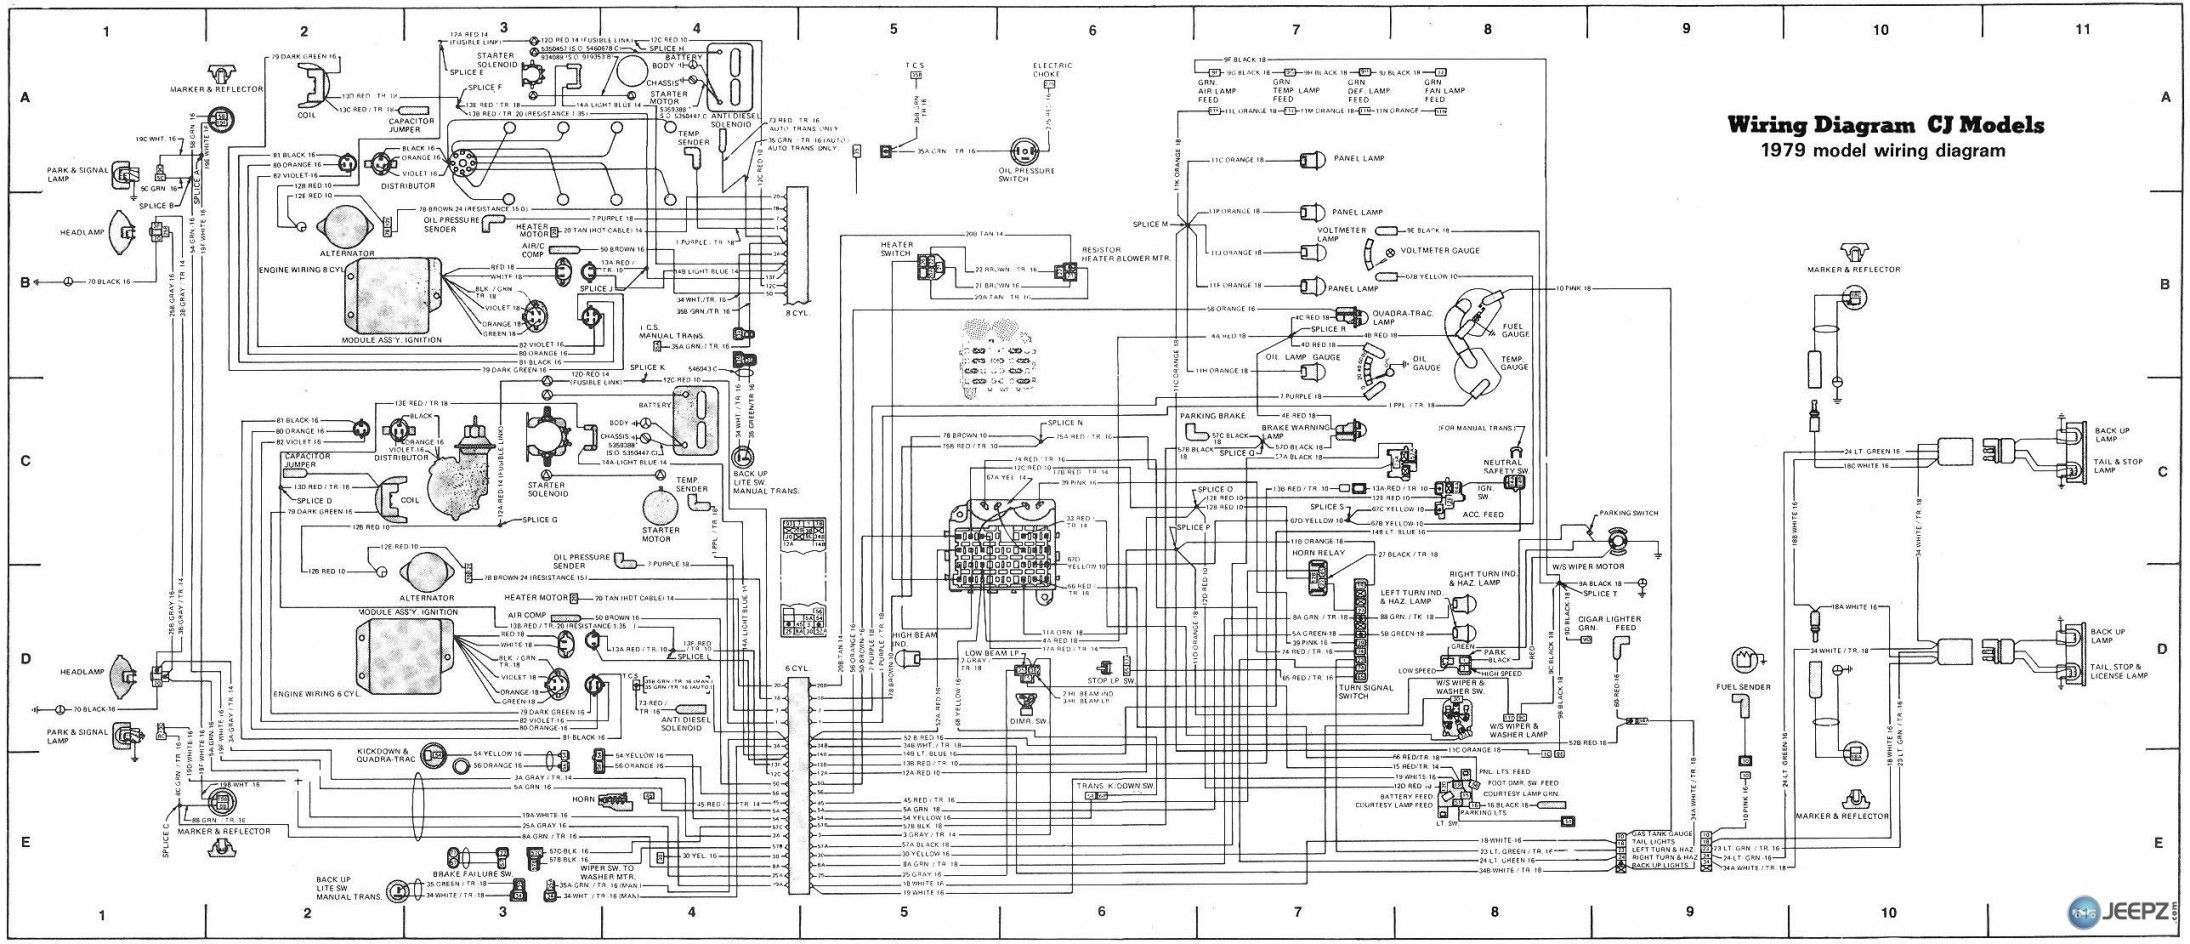 1985 cj7 fuse diagram electrical wiring diagram house u2022 rh  universalservices co 2000 Jeep Cherokee Fuse Diagram 2005 Jeep Liberty Fuse  Diagram